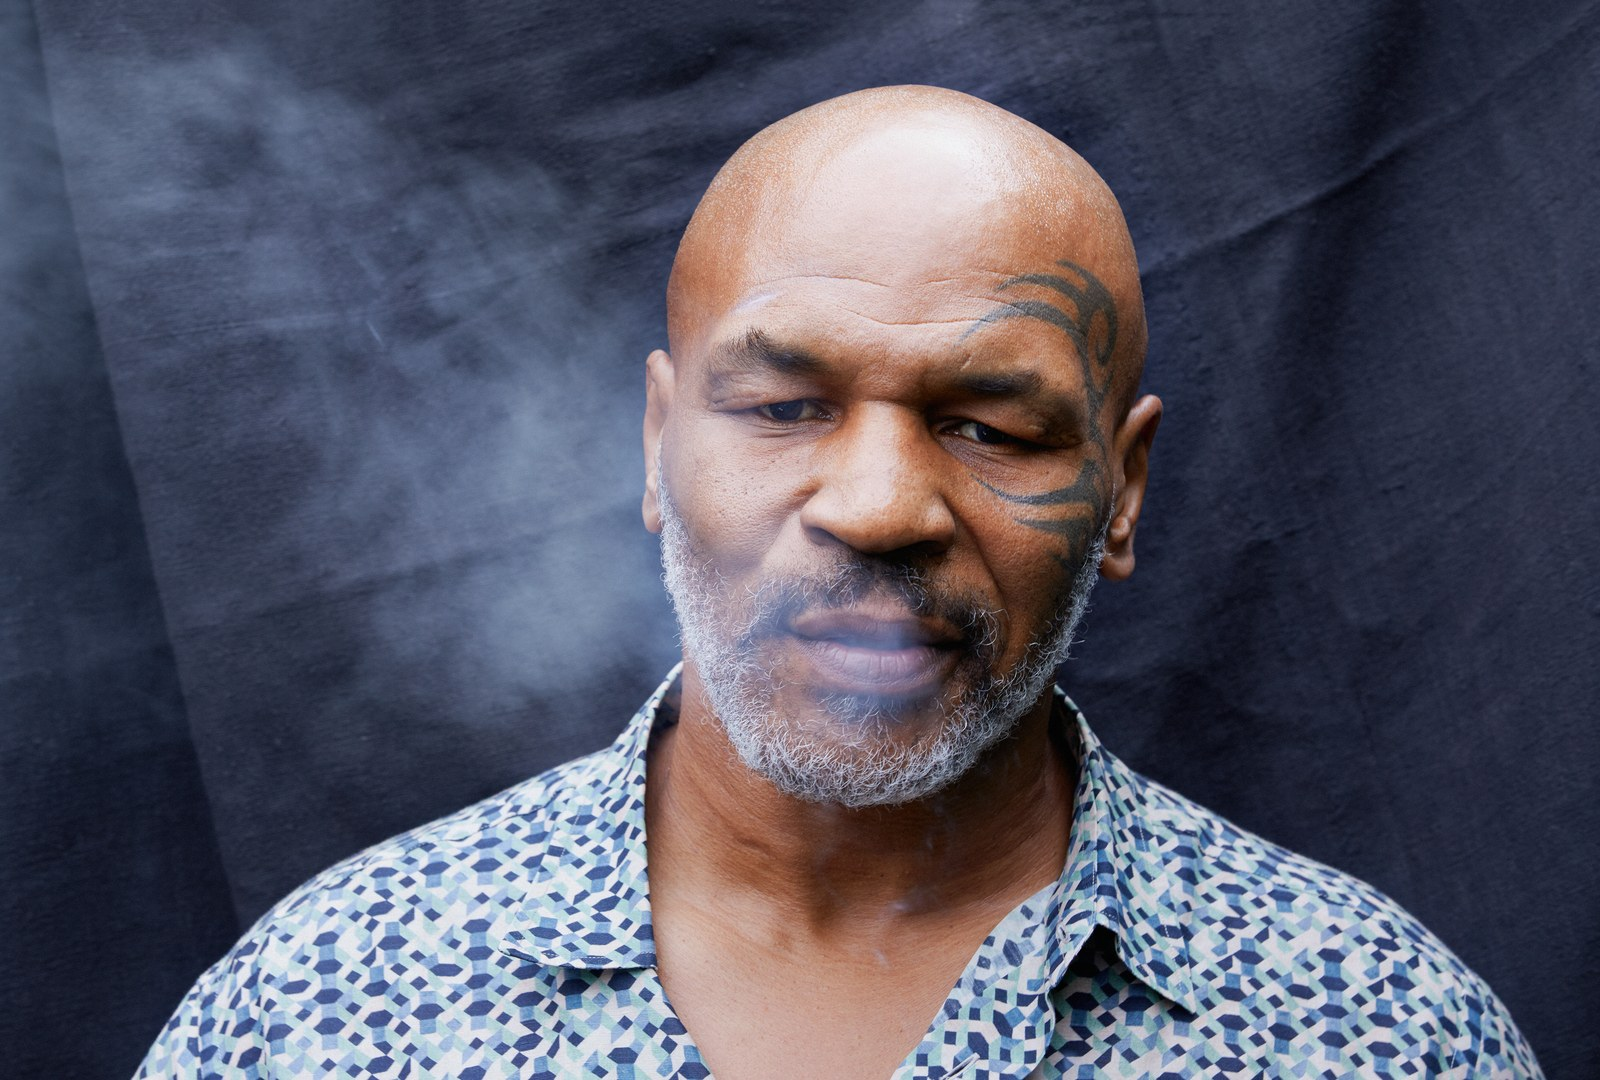 mike-tyson-weed-resort-summer-beach-reads-gq-june-july-2019-03.jpg